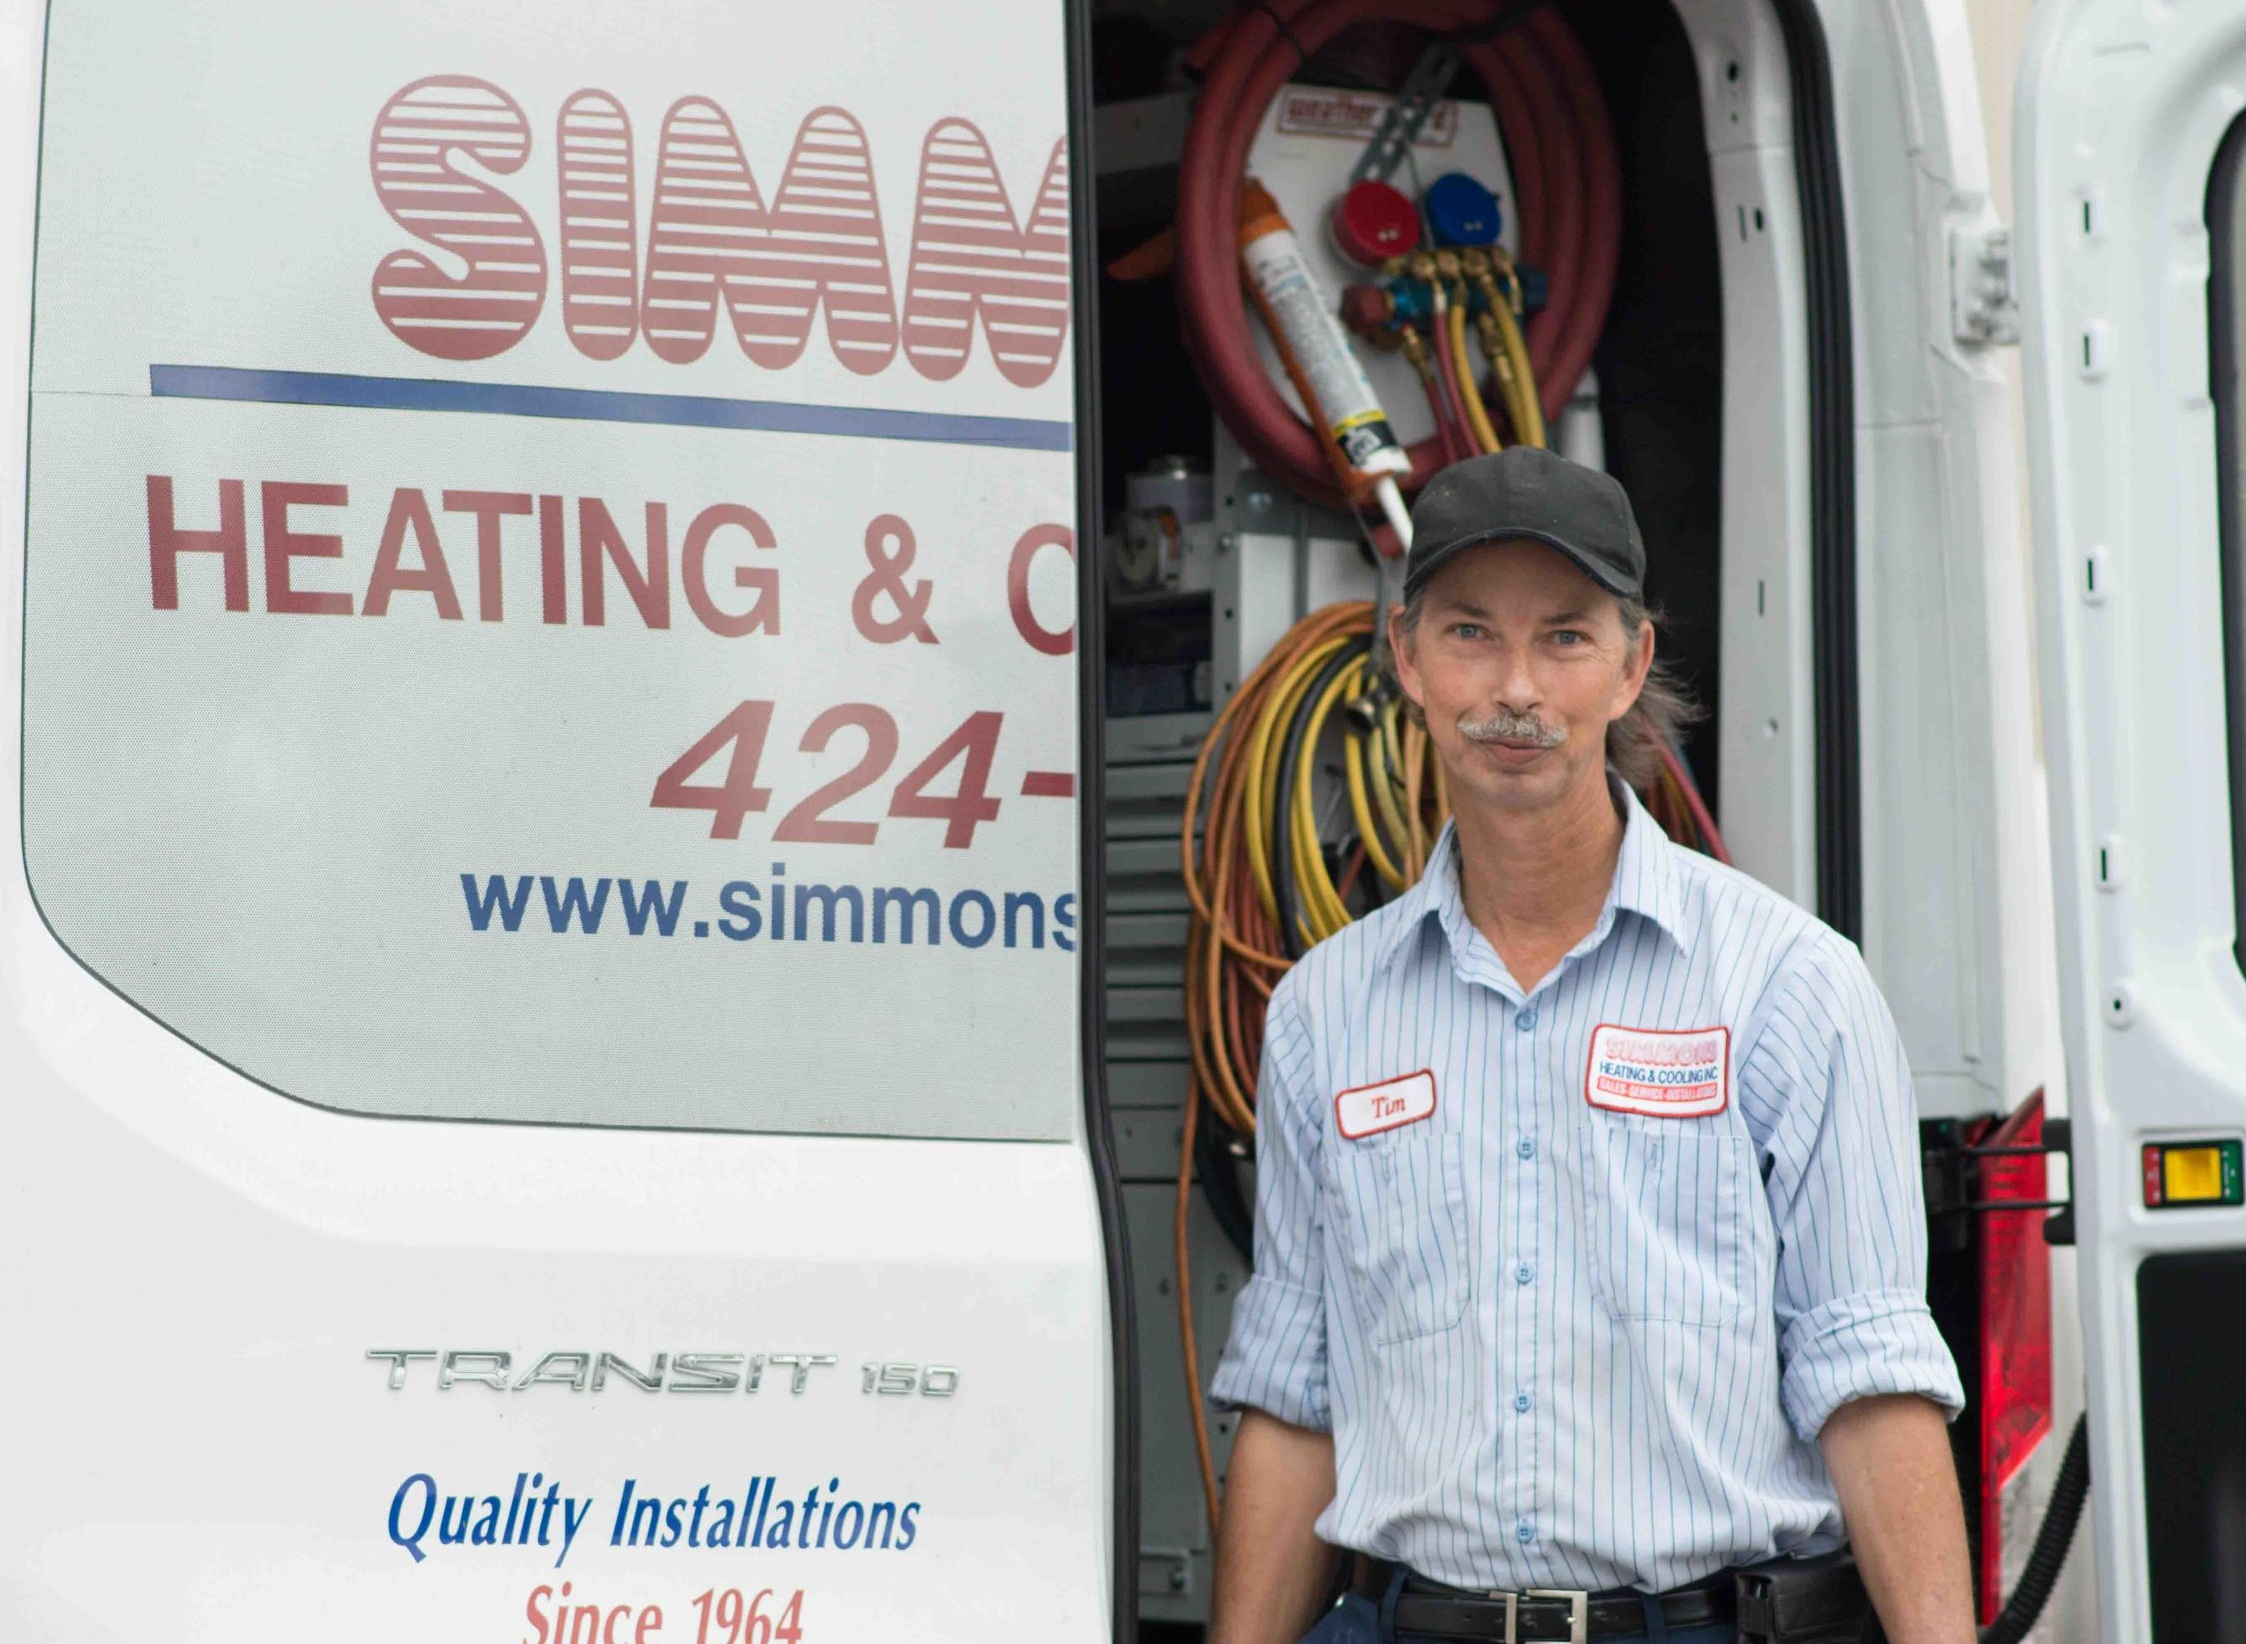 tIM cARTER - SERVICE TECHNICIAN